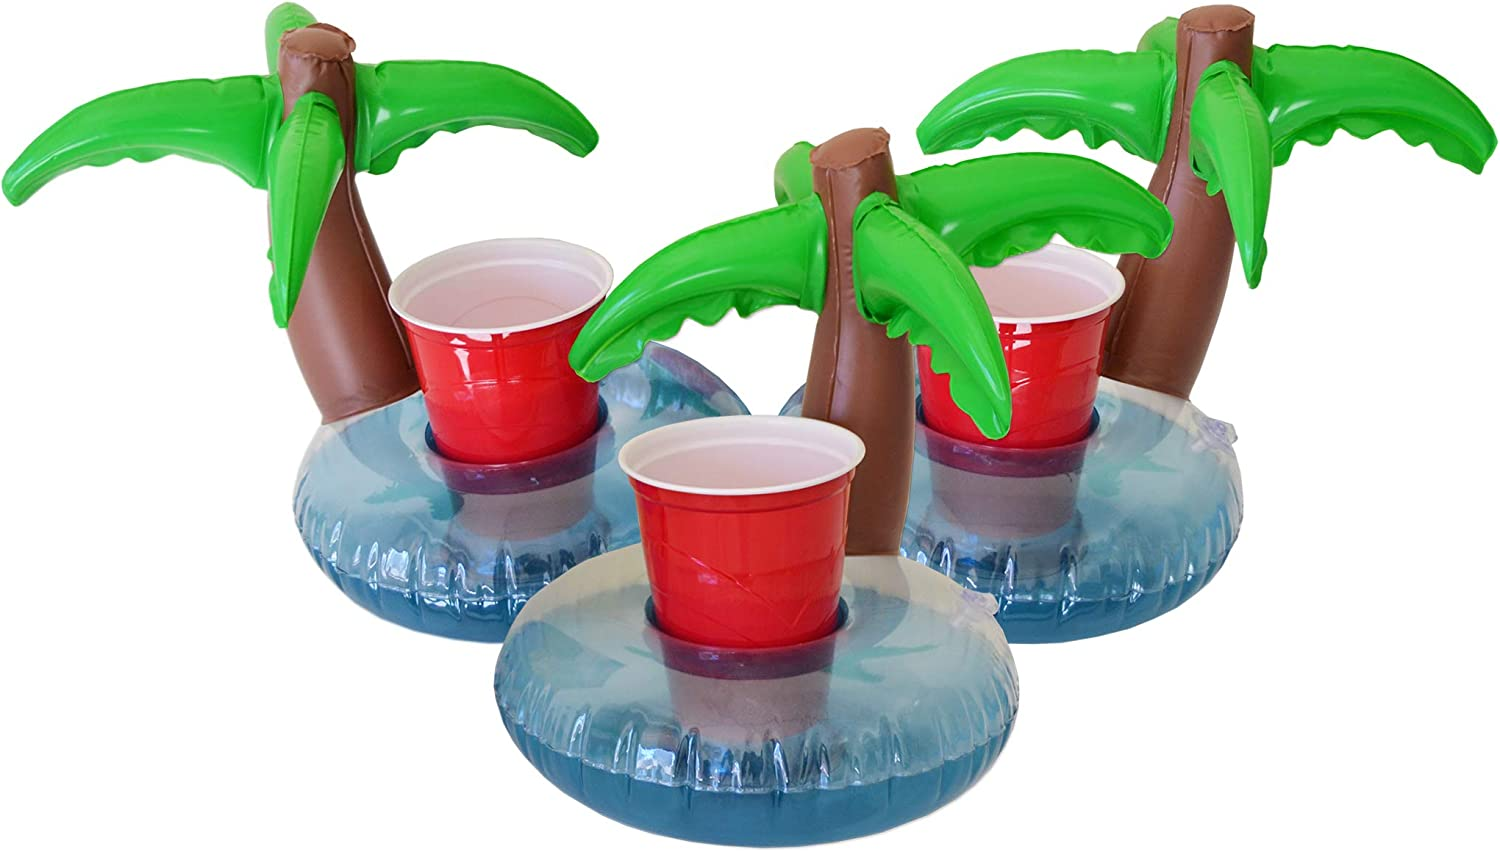 GoFloats Inflatable Pool Drink Holders (3 Pack) Designed in the US - Huge Selection from Unicorn, Flamingo, Palm and More - Float Your Hot Tub Drinks In Style